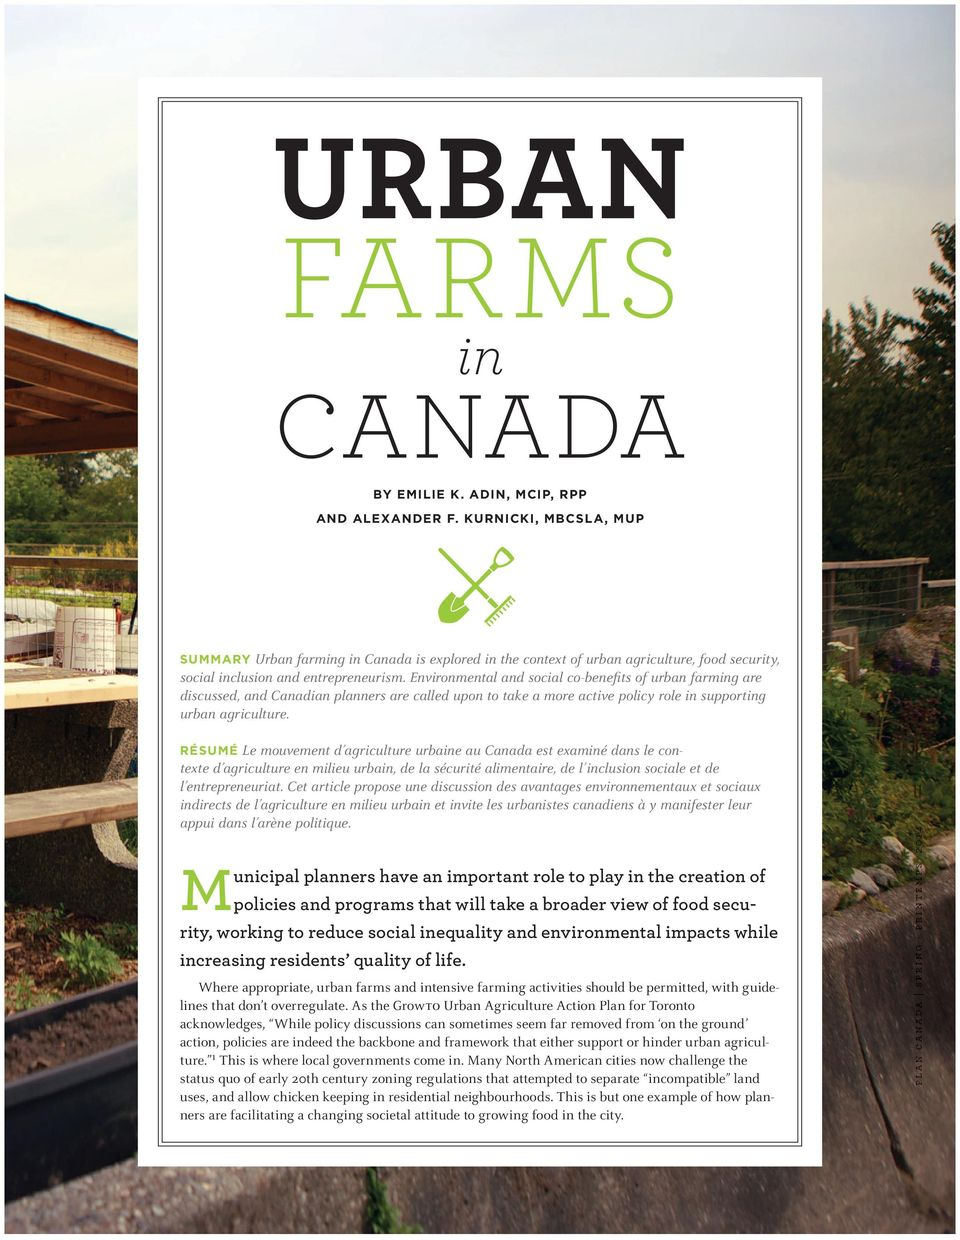 Environmental and social co-benefits of urban farming are discussed, and Canadian planners are called upon to take a more active policy role in supporting urban agriculture.